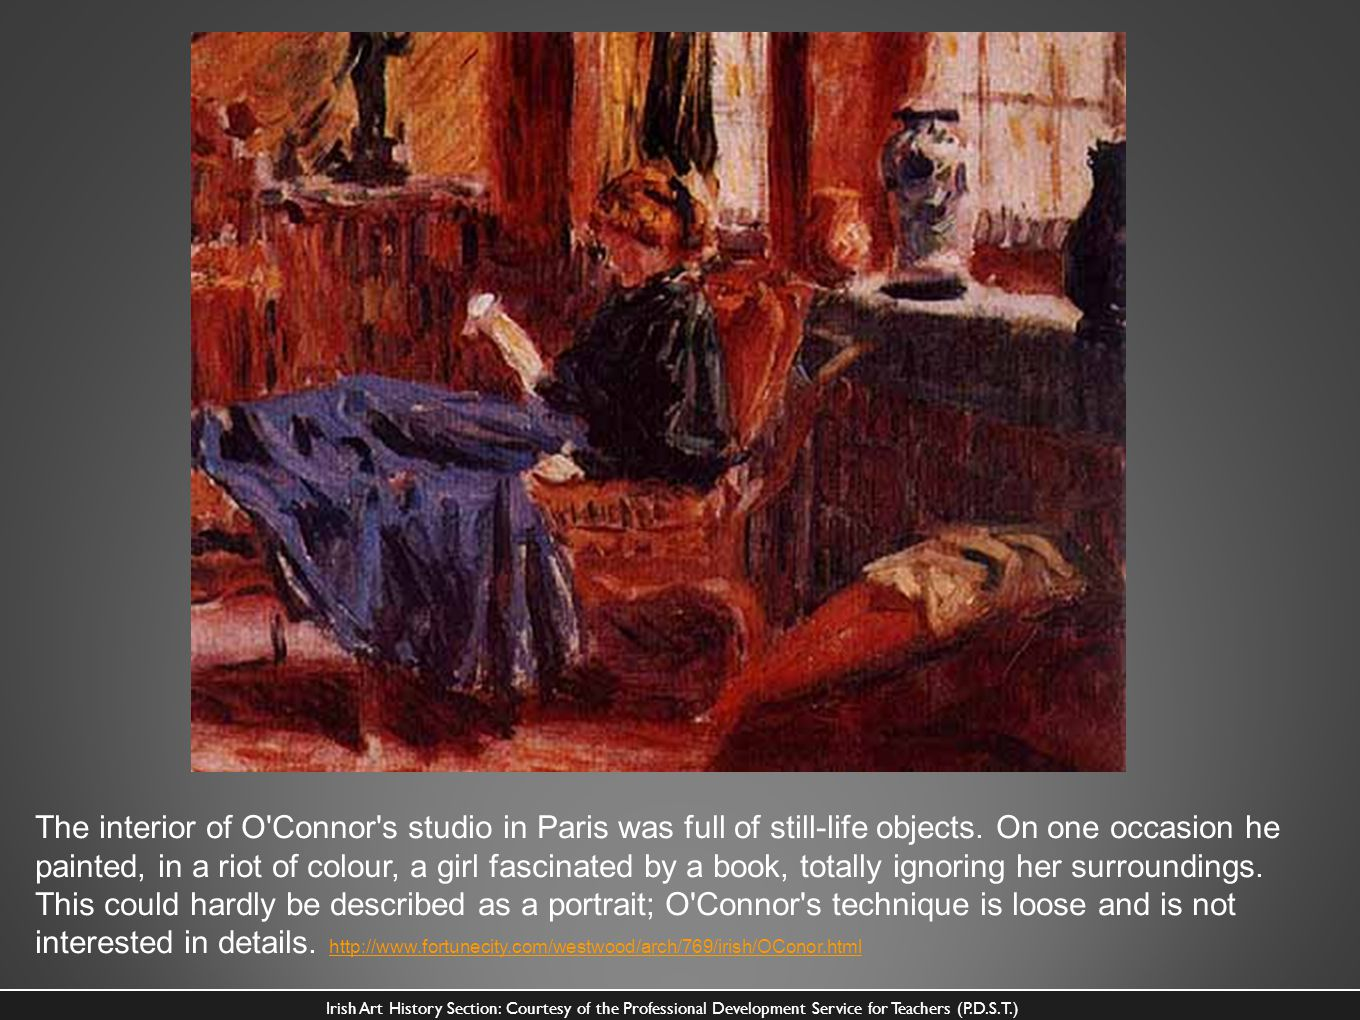 The interior of O'Connor's studio in Paris was full of still-life objects. On one occasion he painted, in a riot of colour, a girl fascinated by a boo